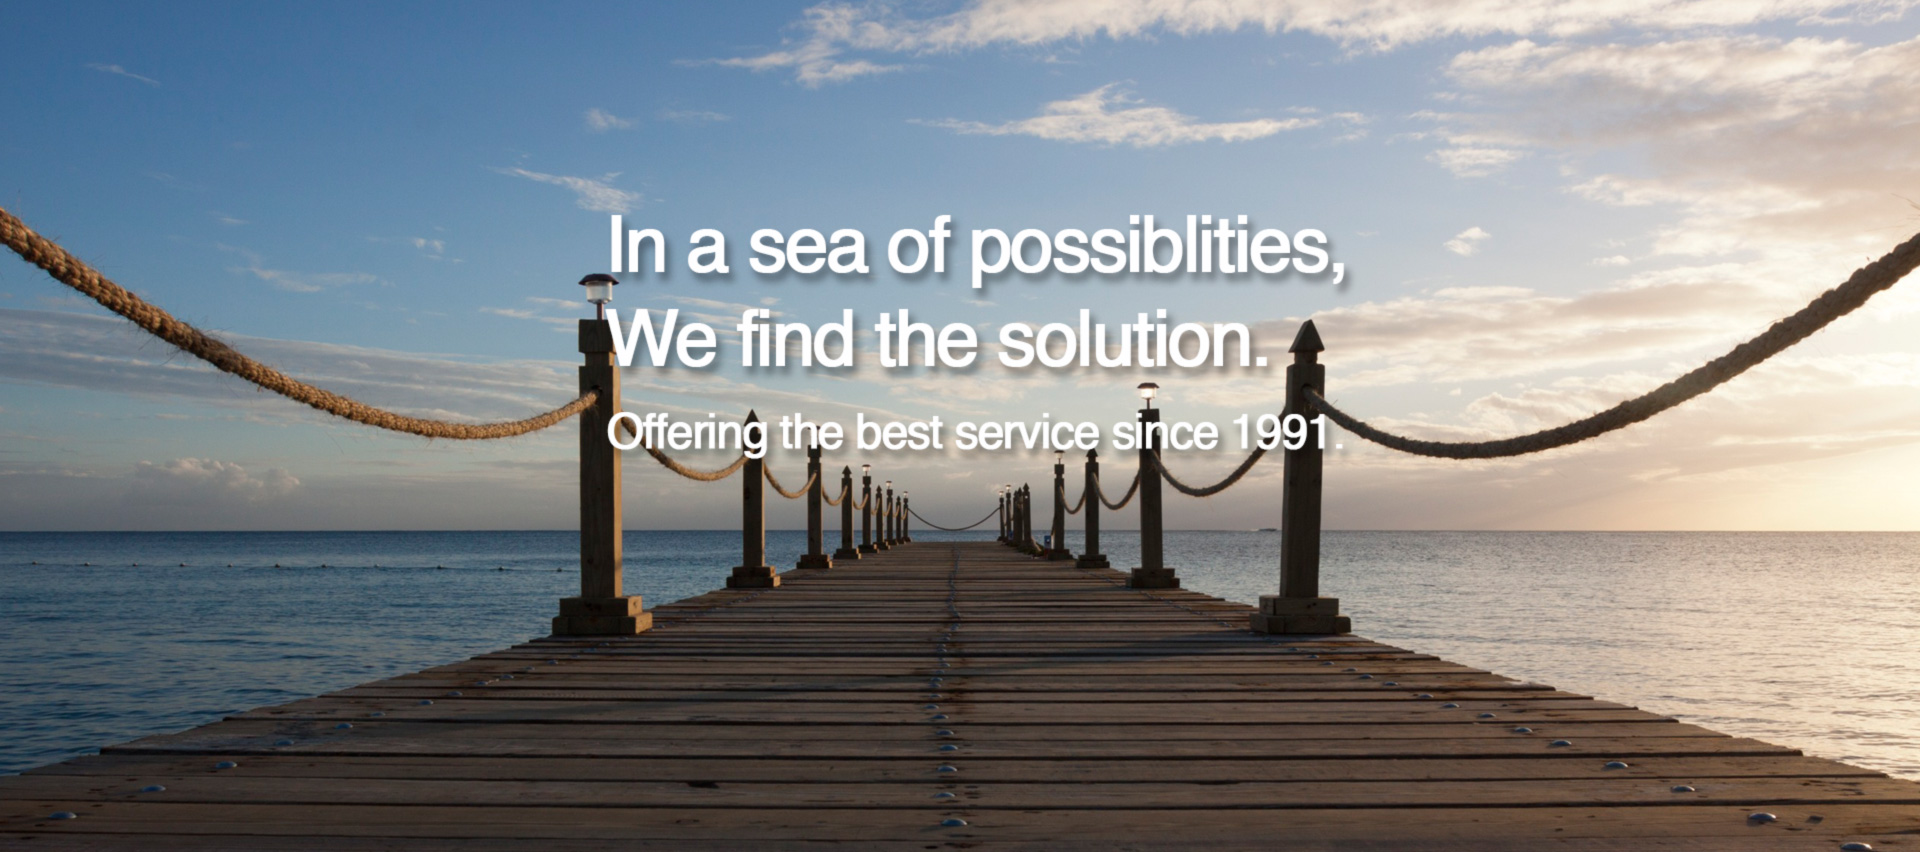 In a sea of possiblities, We find the solution.